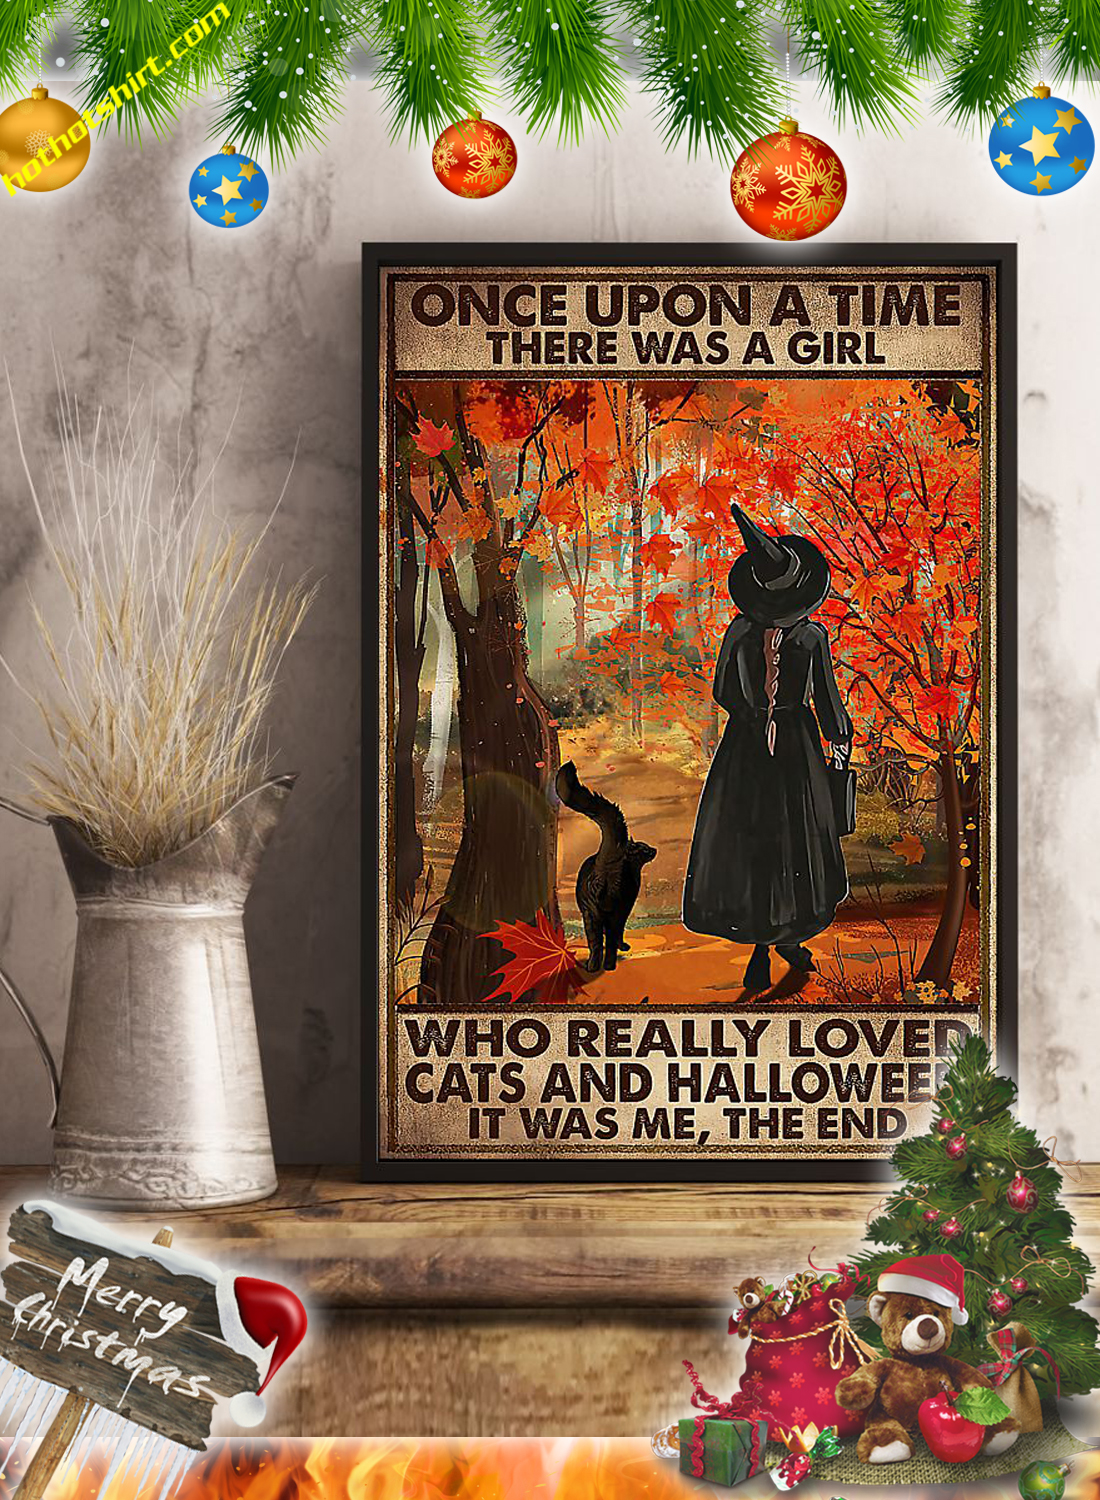 Once upon a time there was a girl who really loved cats and halloween it was me the end poster 3